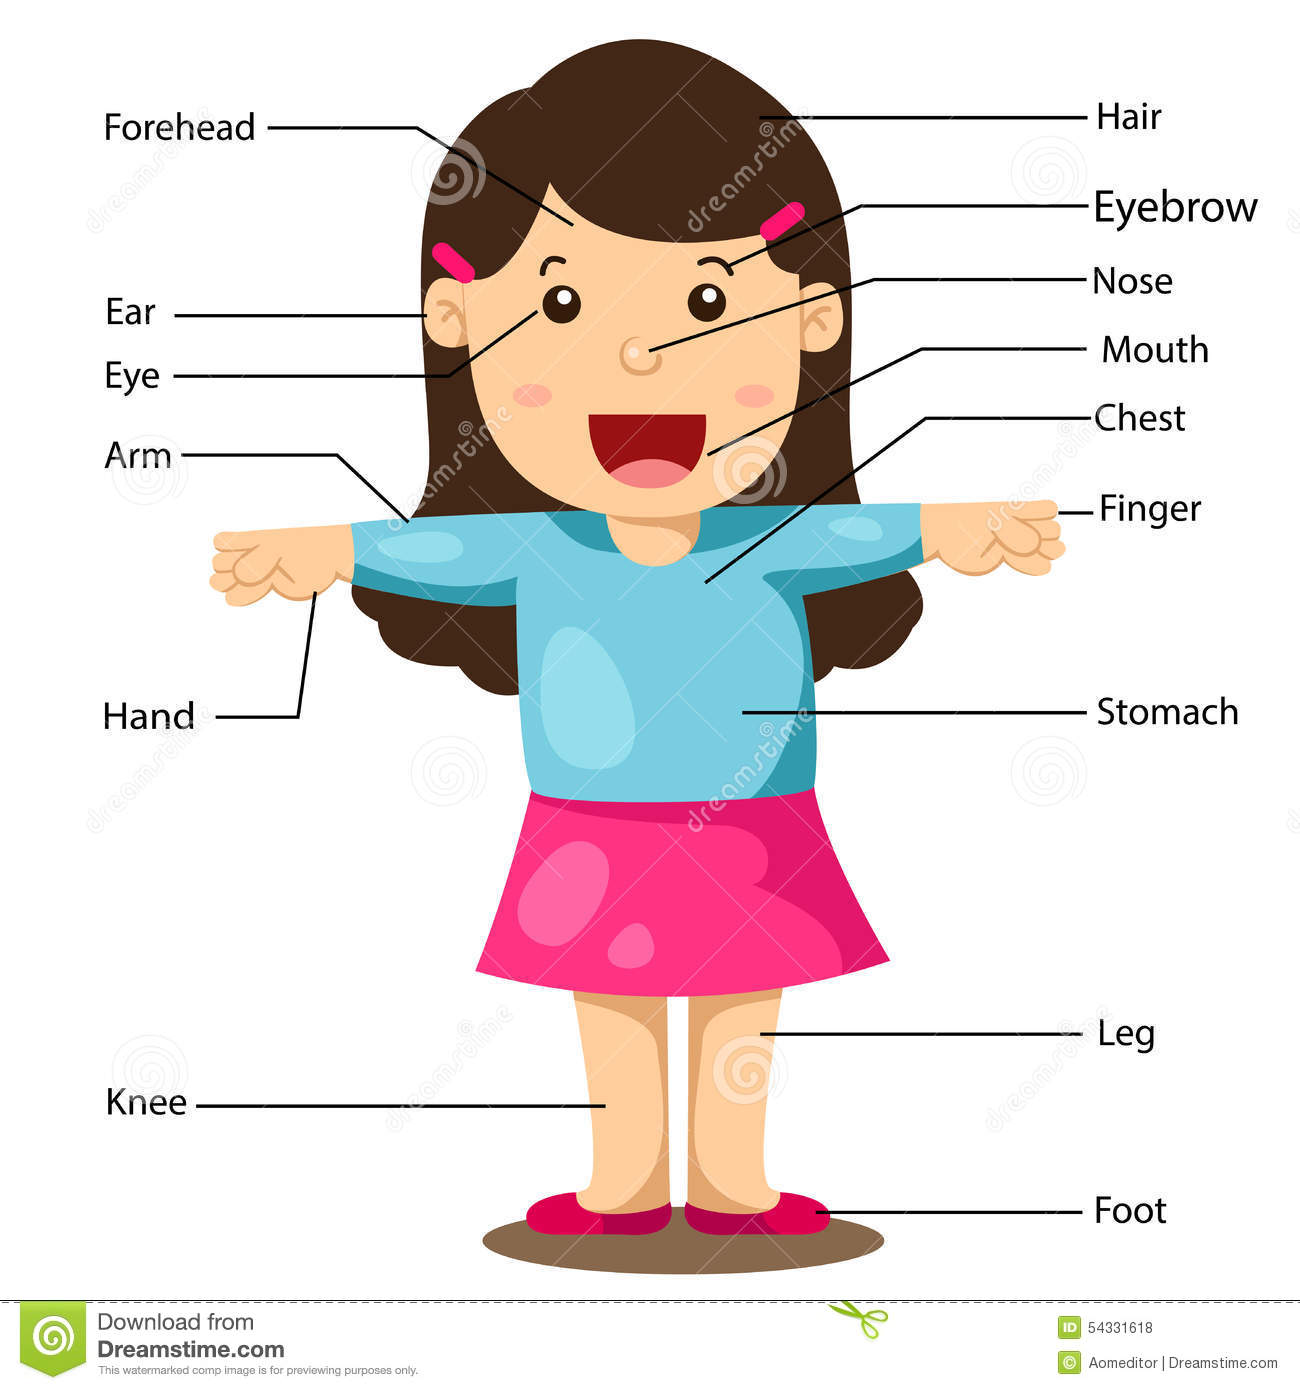 Stock Illustration Illustration Girl Labeled Body Parts Cute Education Image54331618 on The Main Organs Of Human Body Flashcards